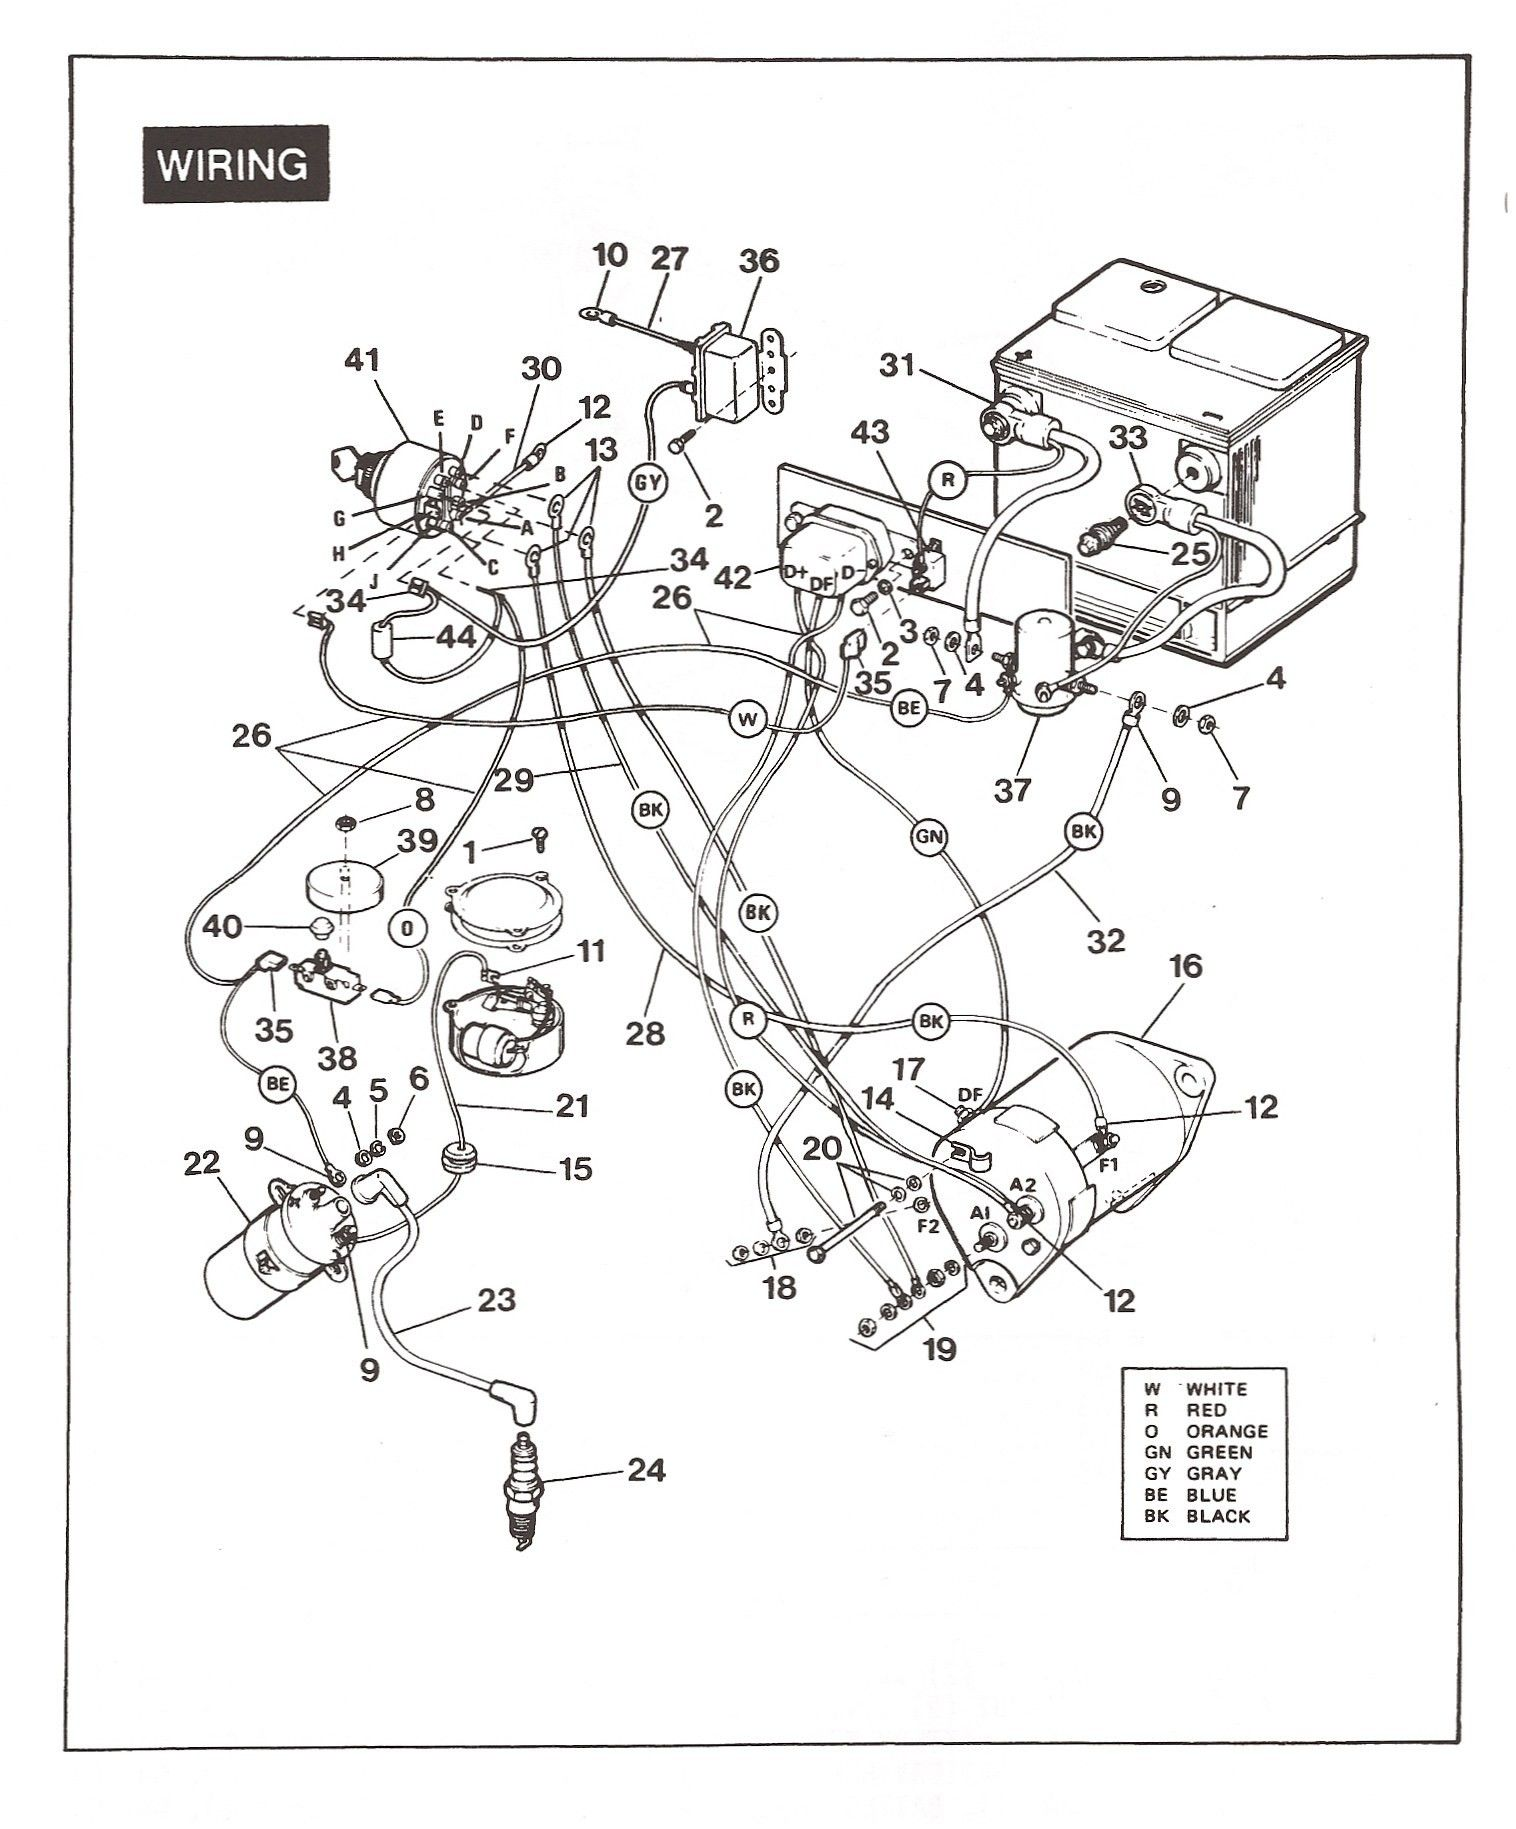 Unique Wiring Diagram For Club Car Golf Cart Diagram